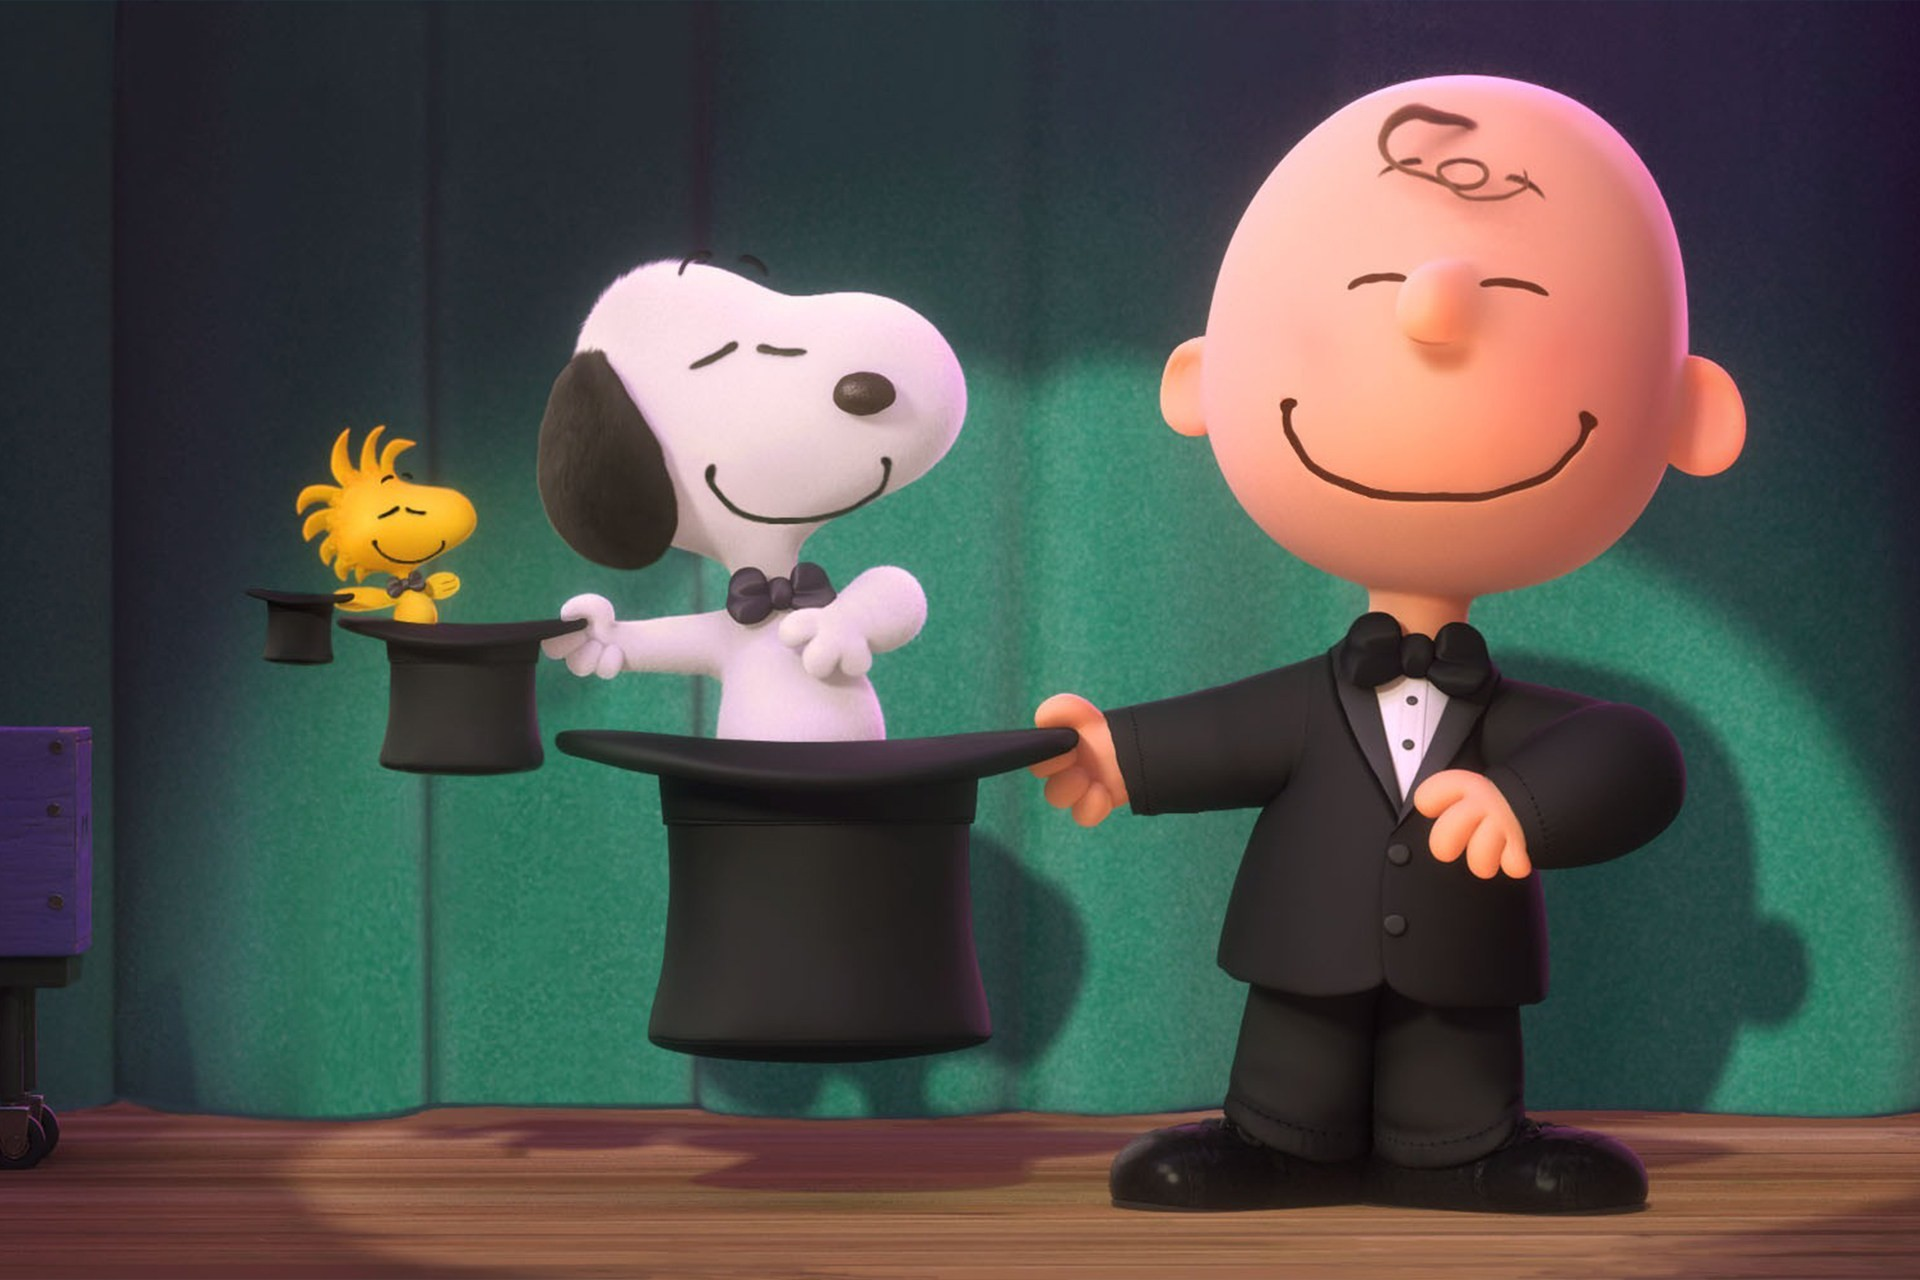 1920x1280 Snoopy And Charlie Brown Desktop Hd Wallpaper Volganga